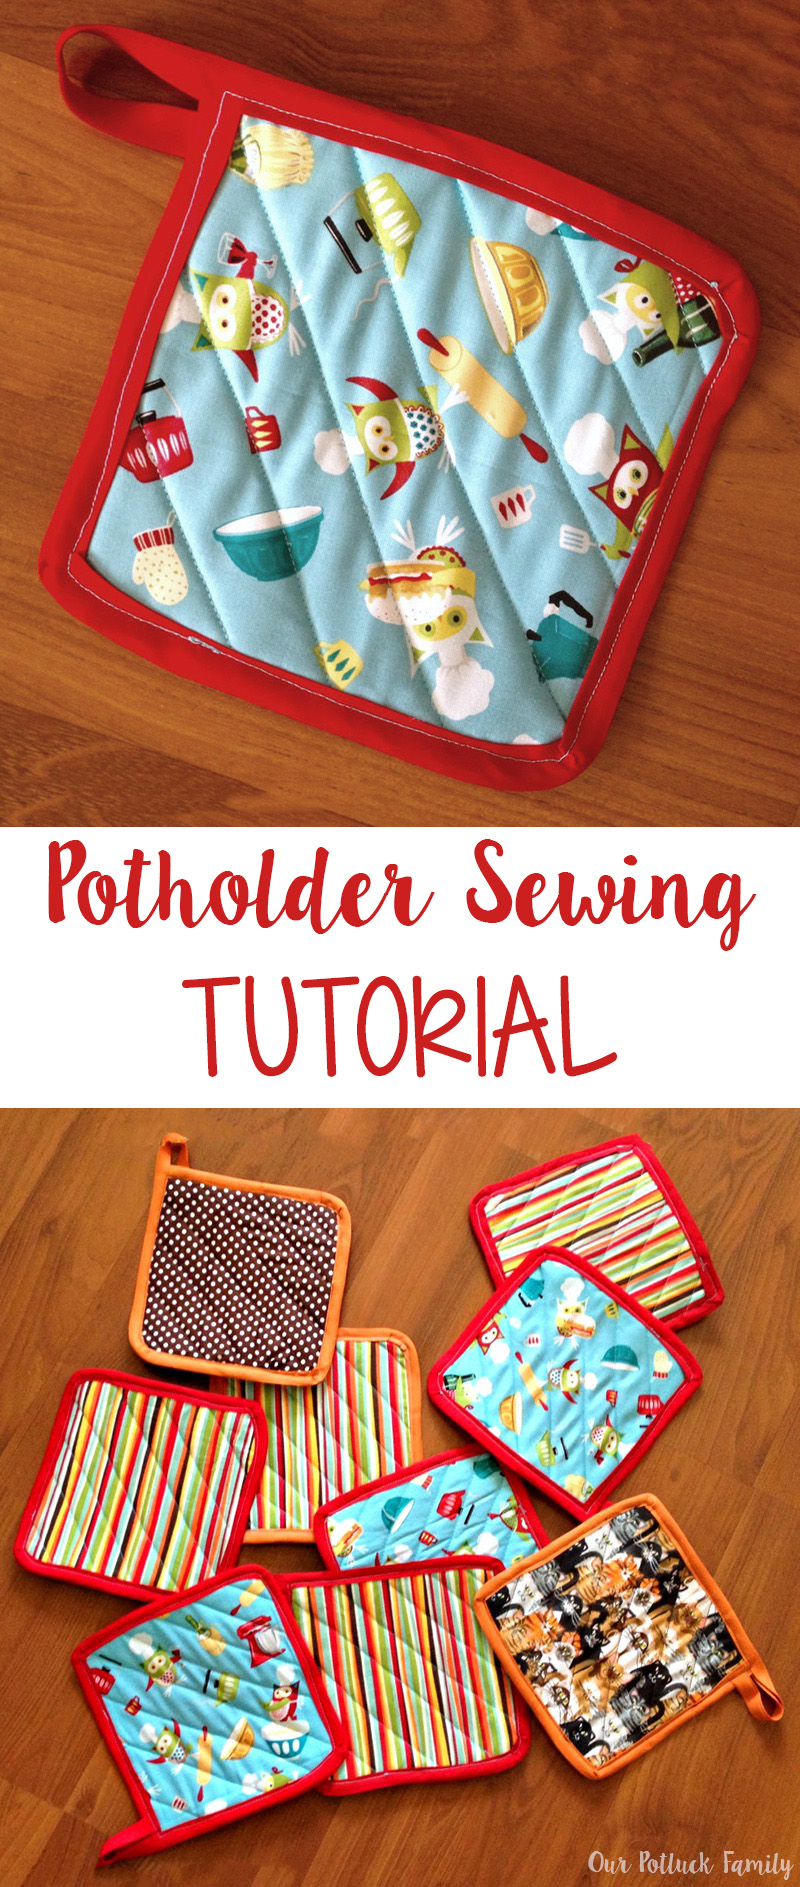 Potholder Sewing Tutorial Our Potluck Family